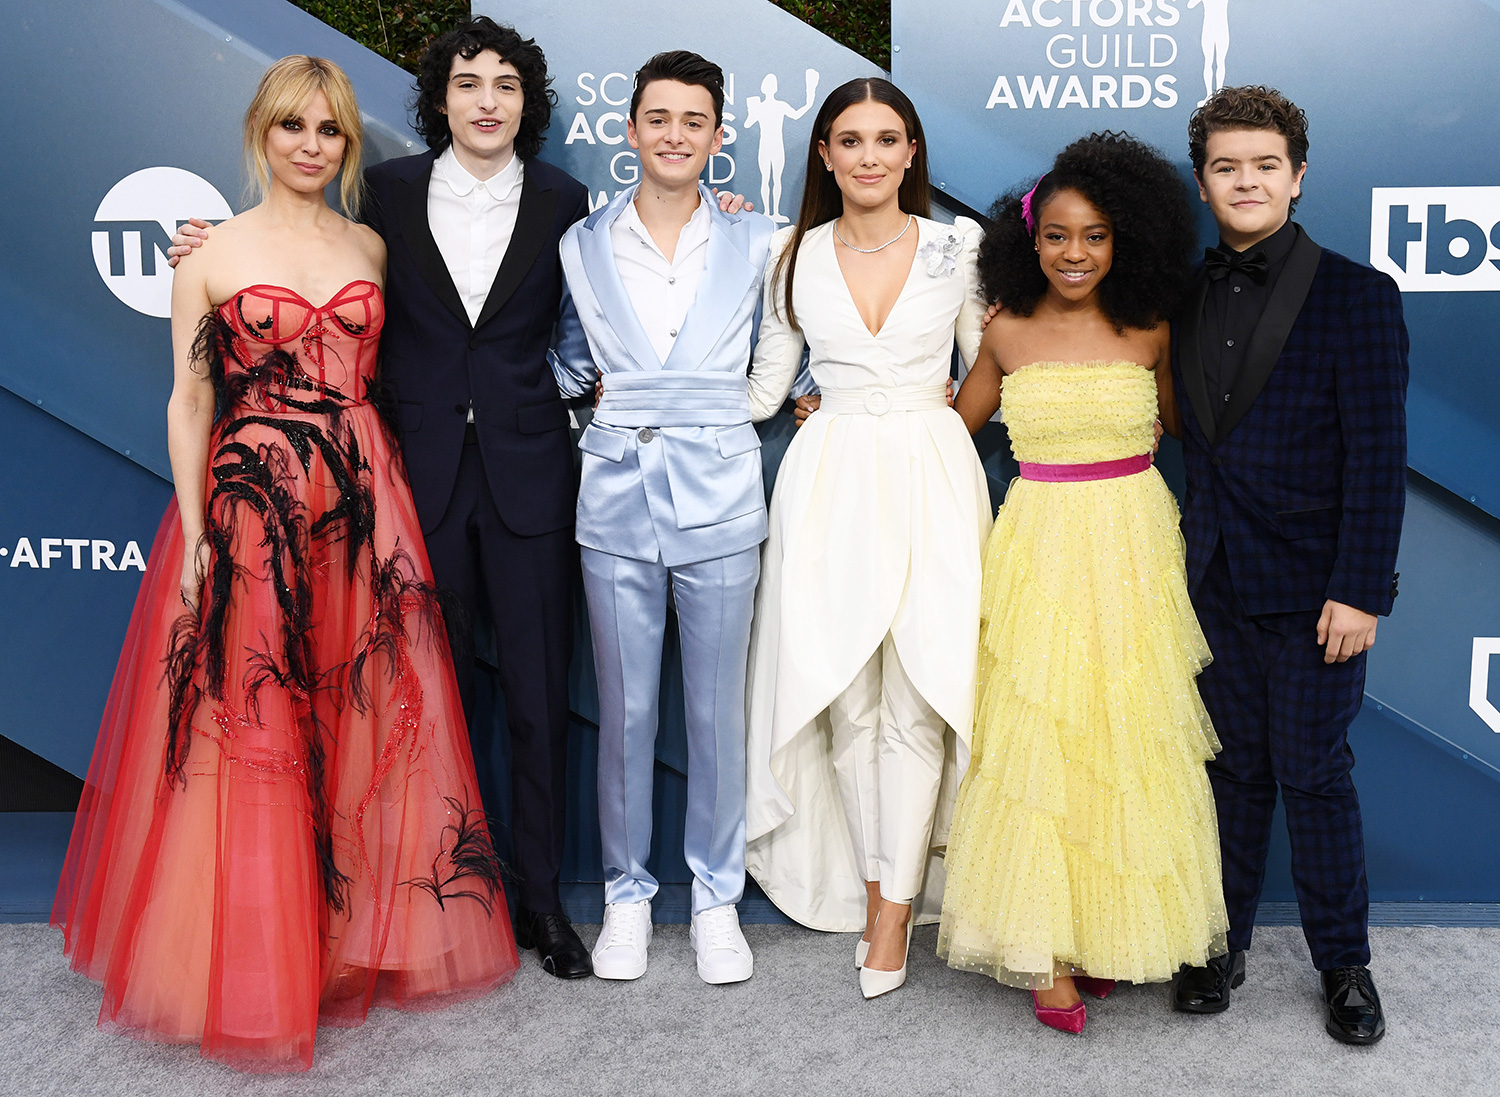 Stranger Things cast 26th Annual Screen Actors Guild Awards, Arrivals, Shrine Auditorium, Los Angeles, USA - 19 Jan 2020